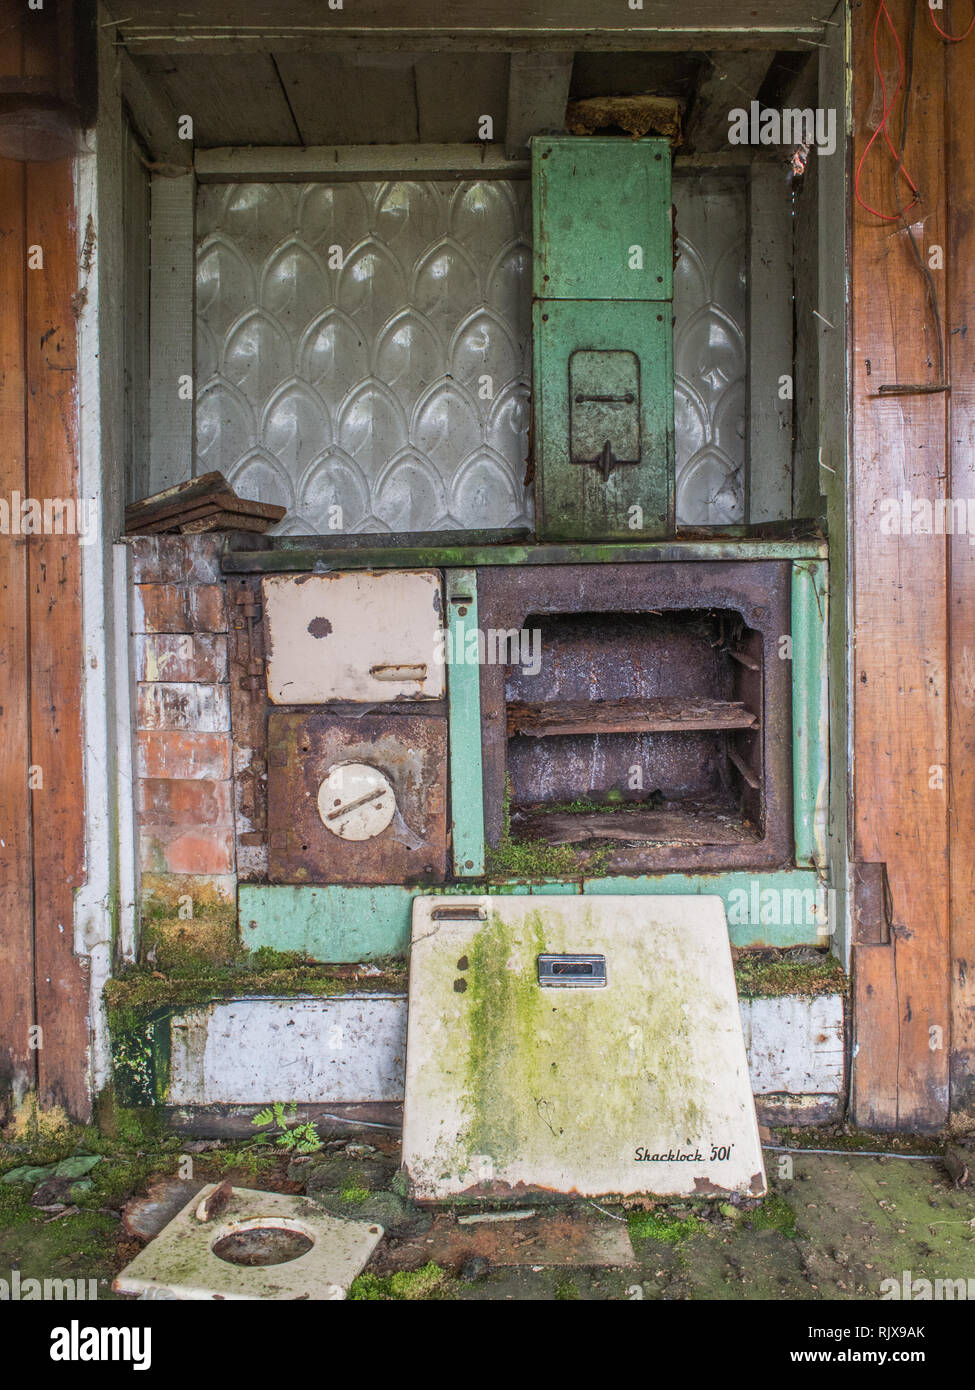 Derelict decaying rusting Shacklock 501 wood stove coal range, Ahu Ahu Ohu, Ahuahu Valley, Whanganui River, New Zealand - Stock Image